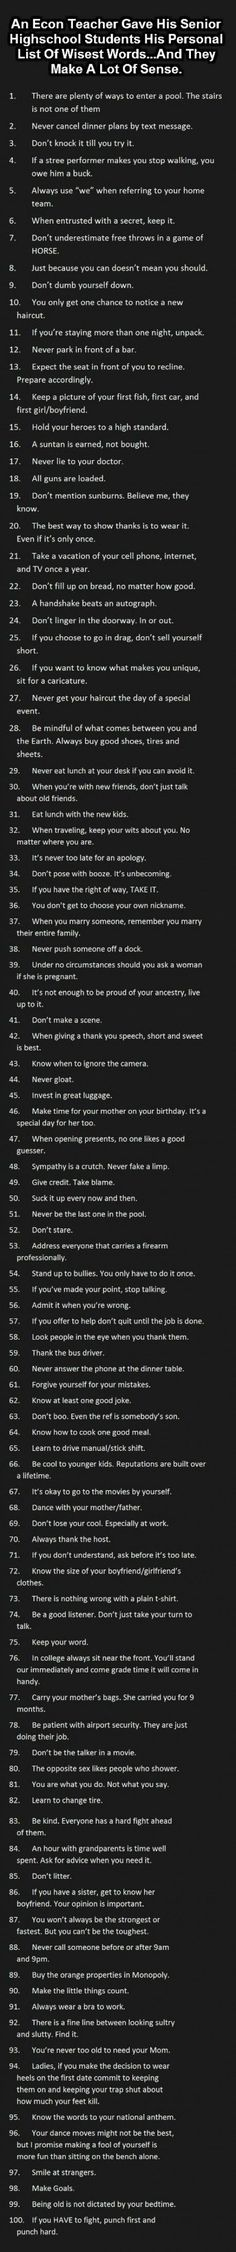 List of wise words